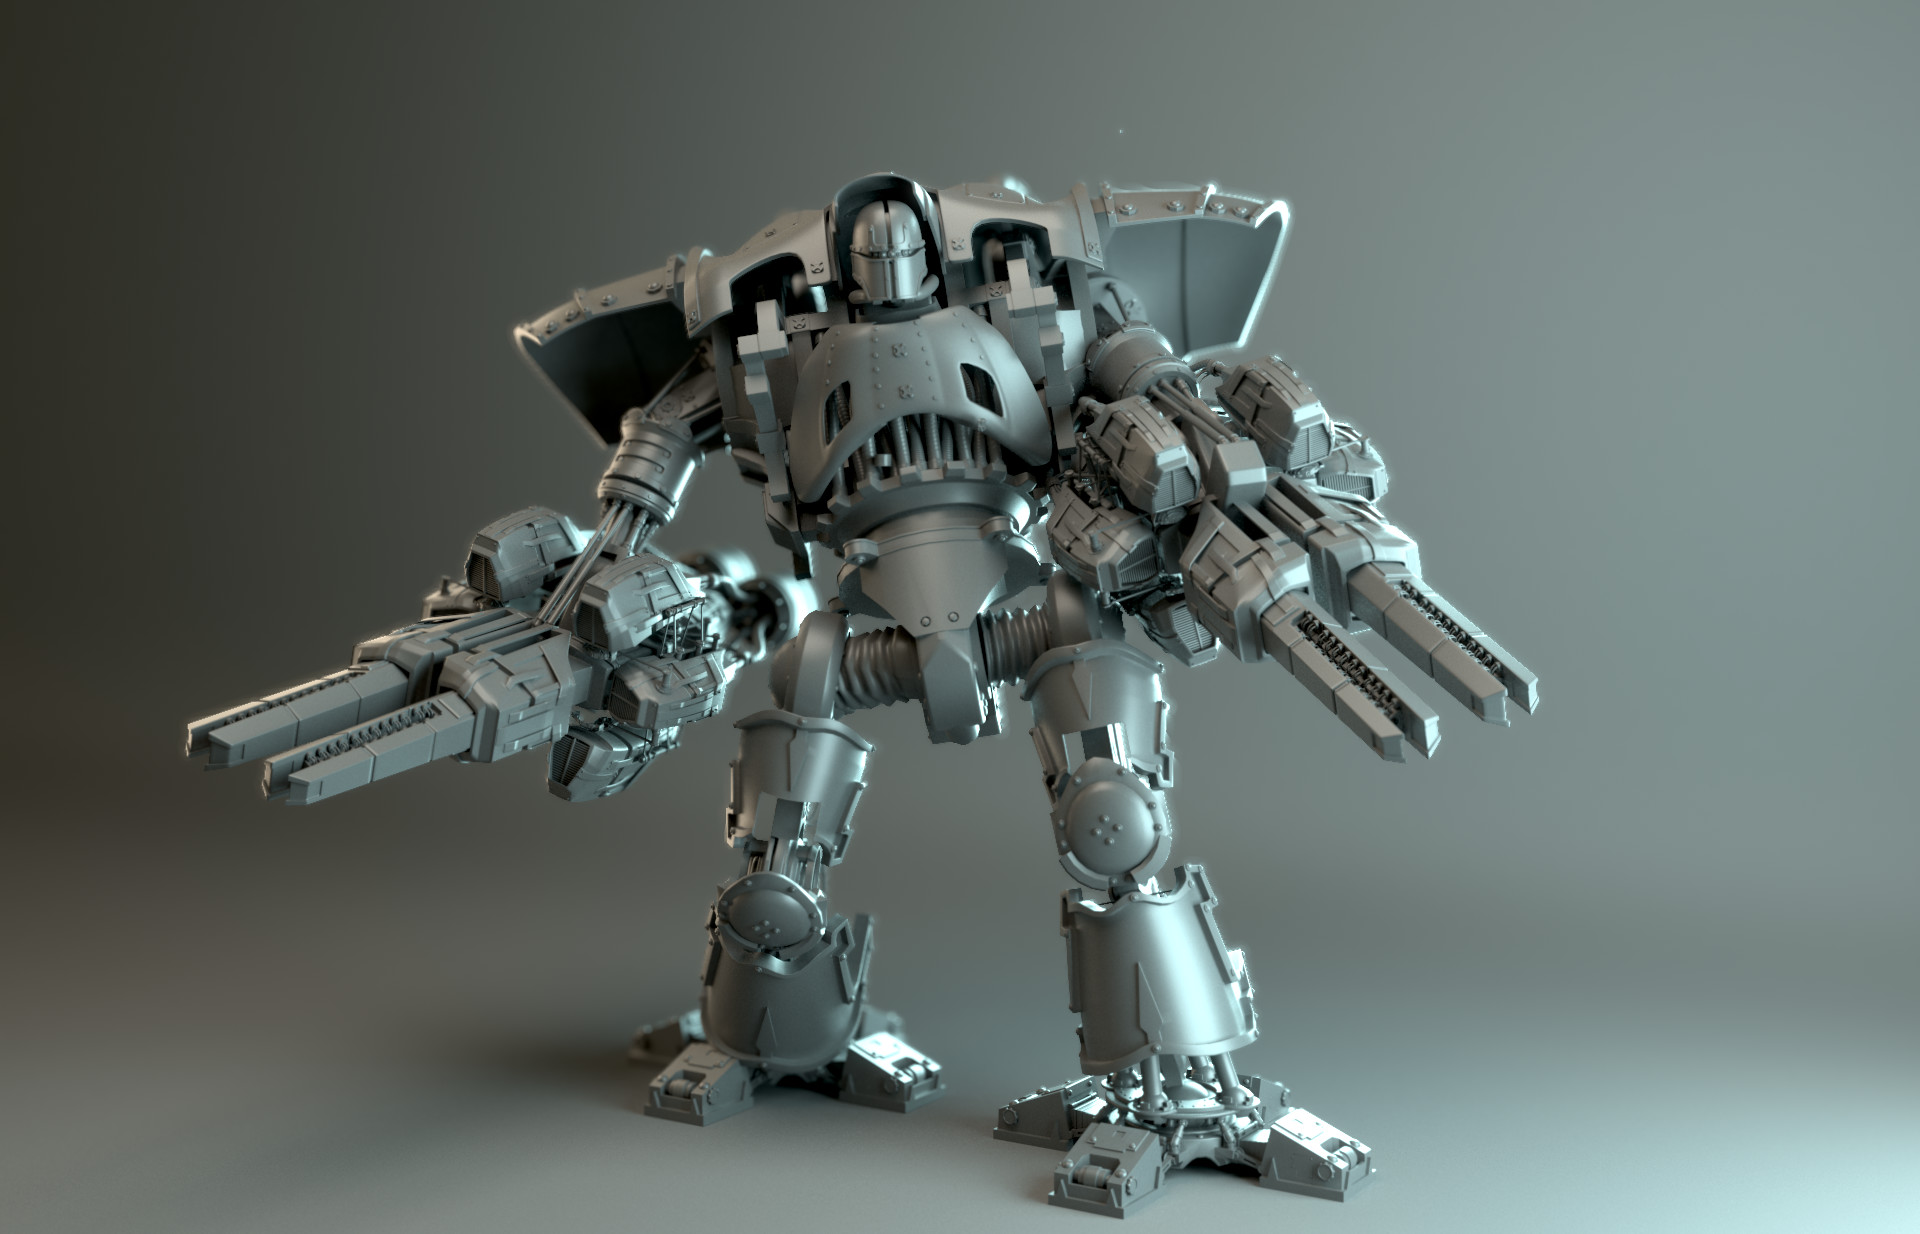 mech lighting example (mech by cris robson used with permission)